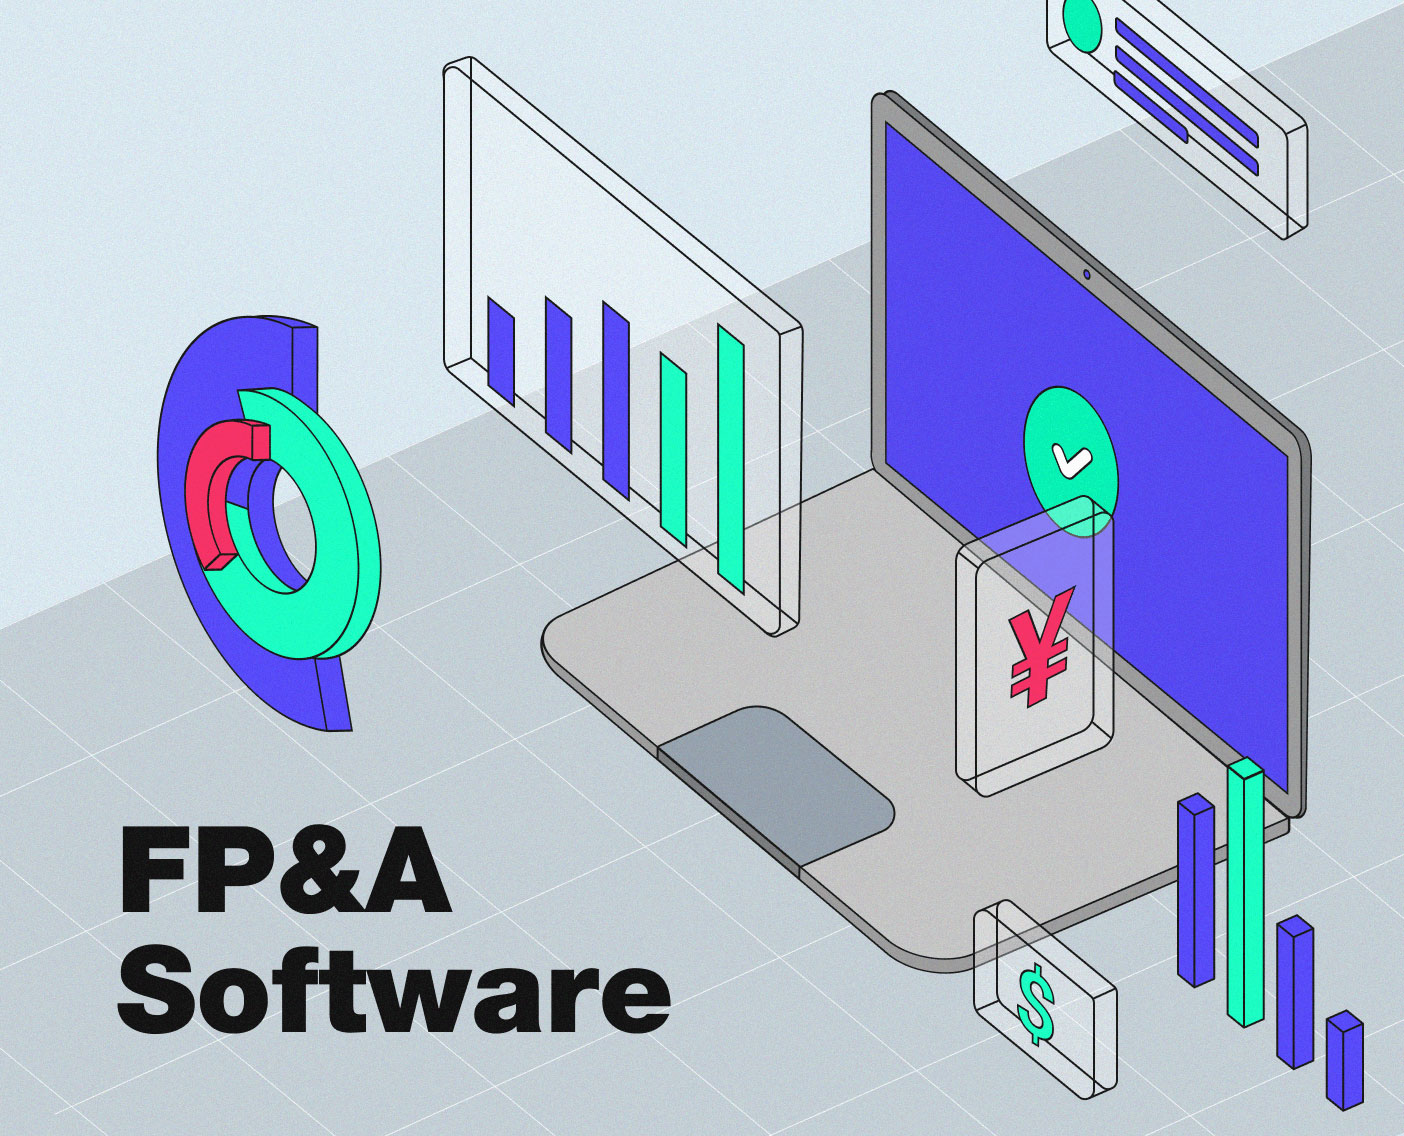 FP&A software 2021